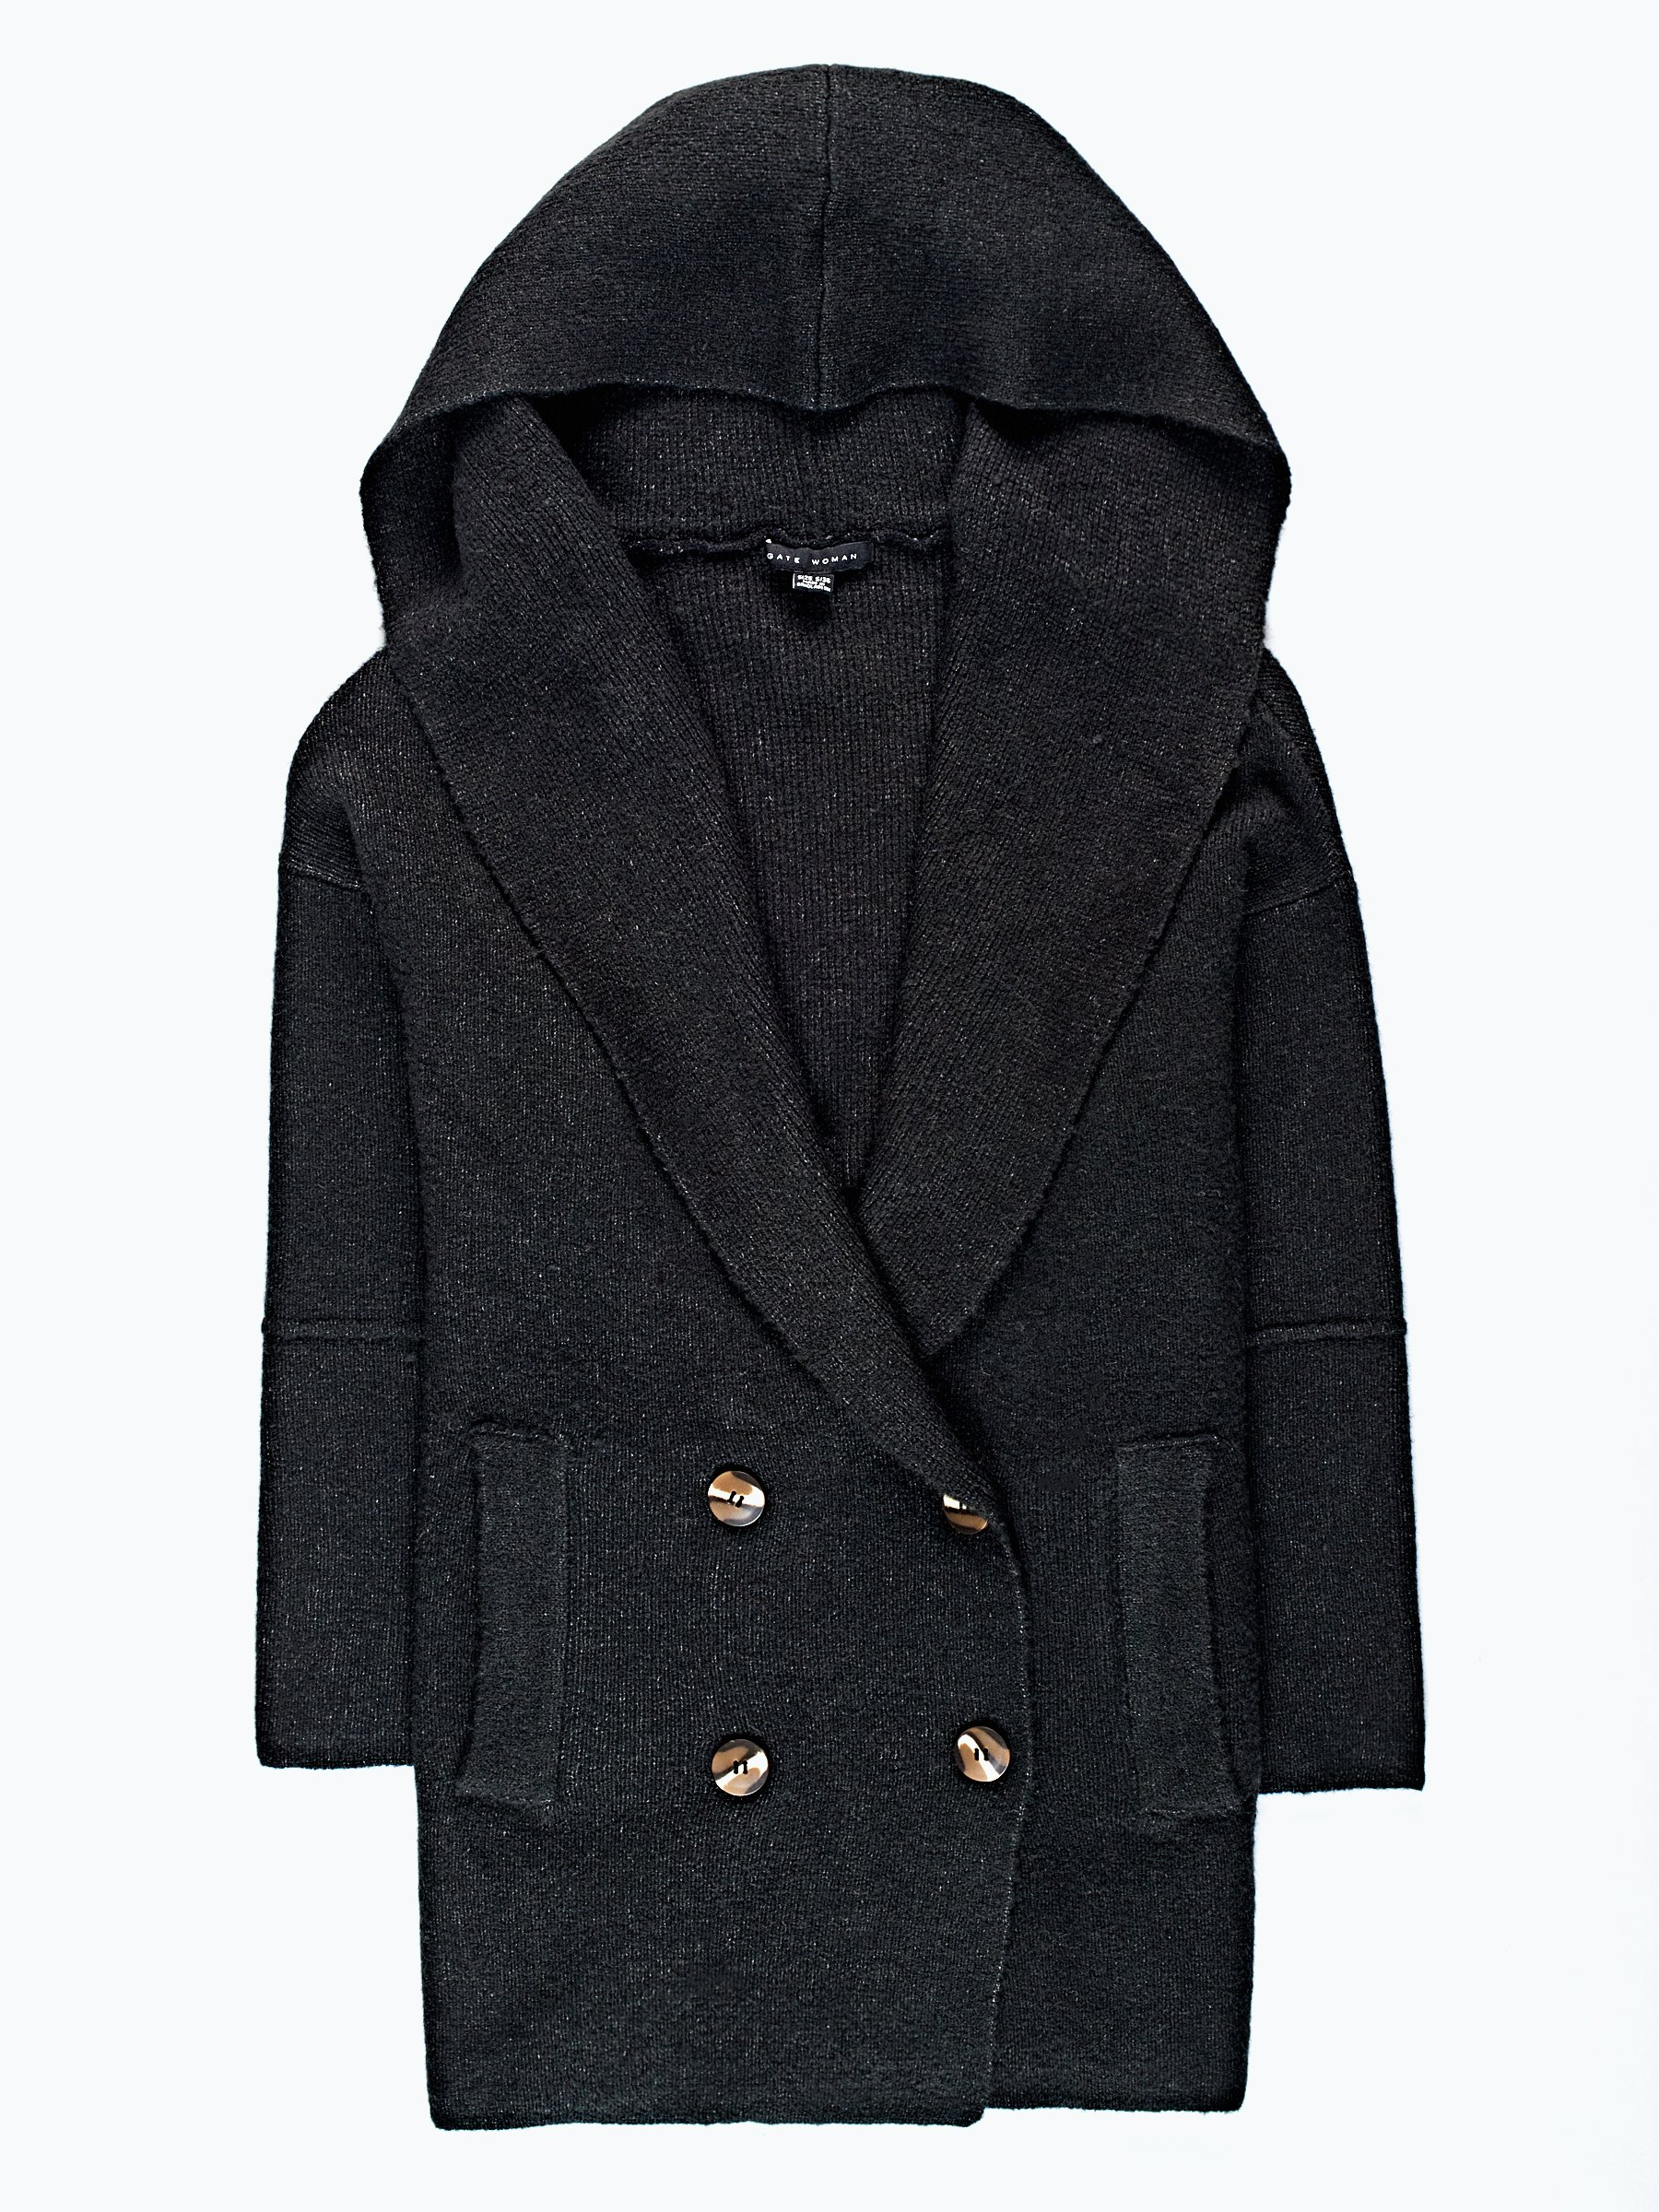 Oversized hooded cardigan in wool blend | GATE